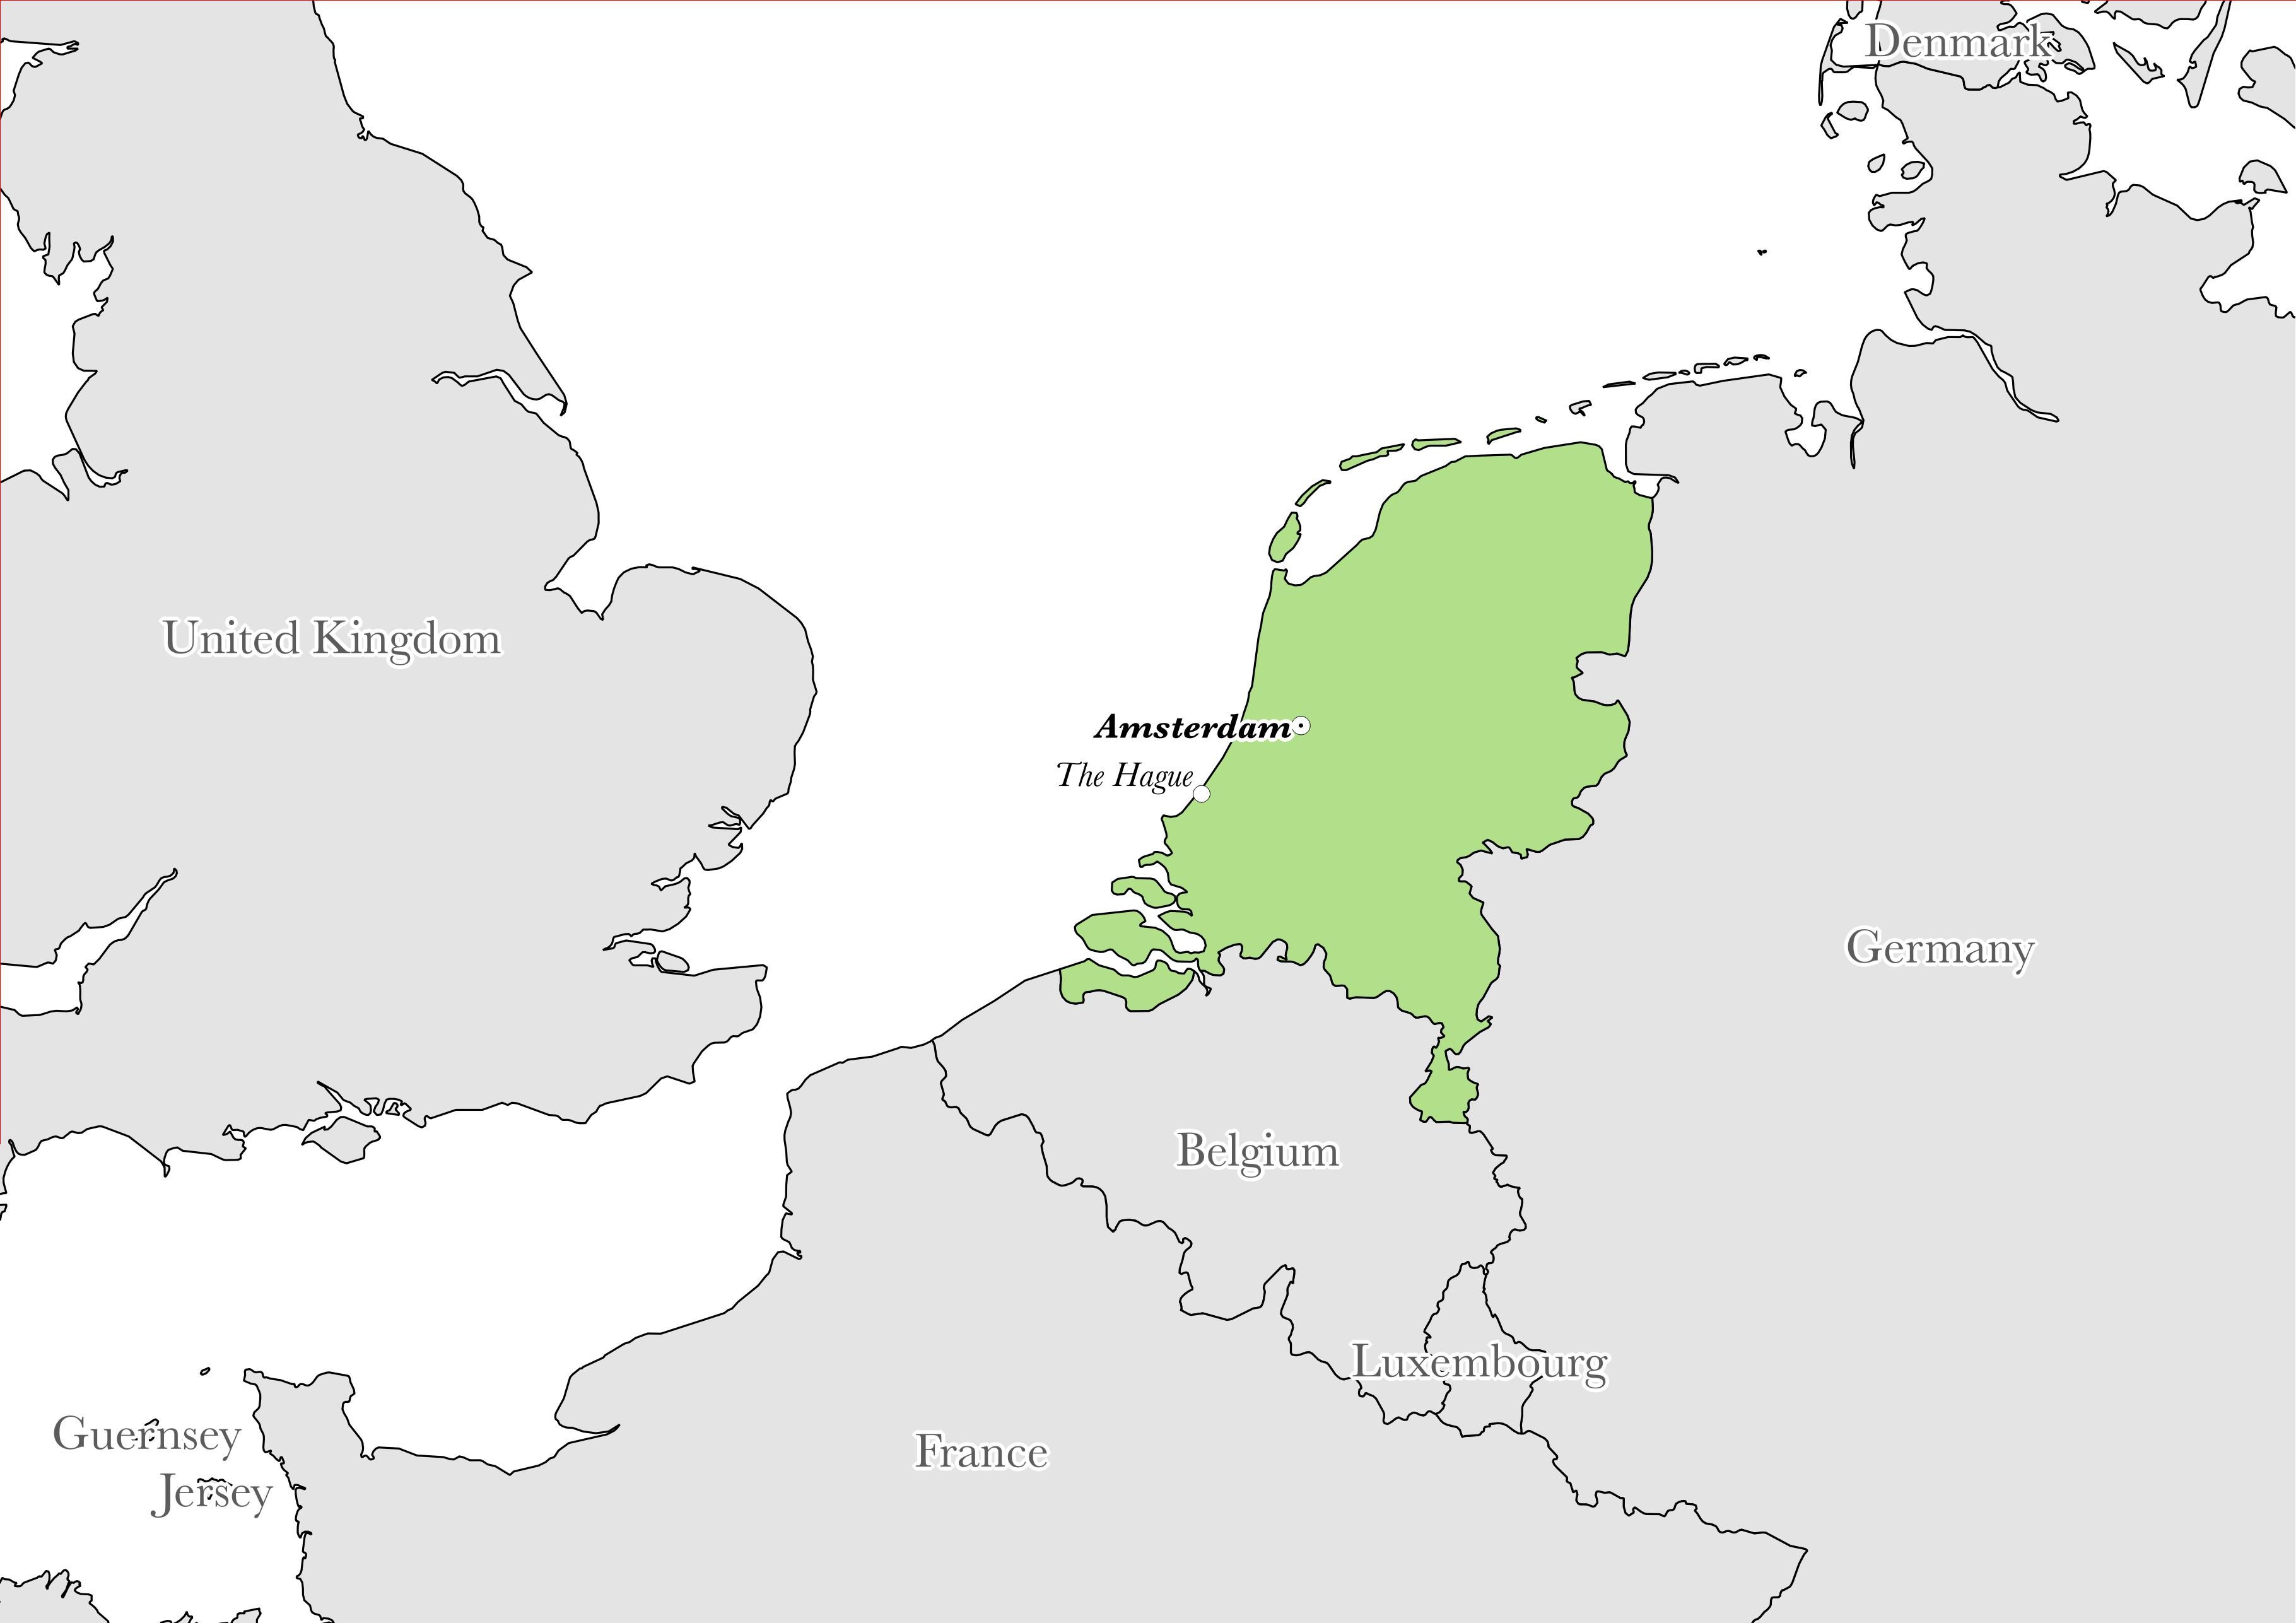 Map showing the location of Netherlands